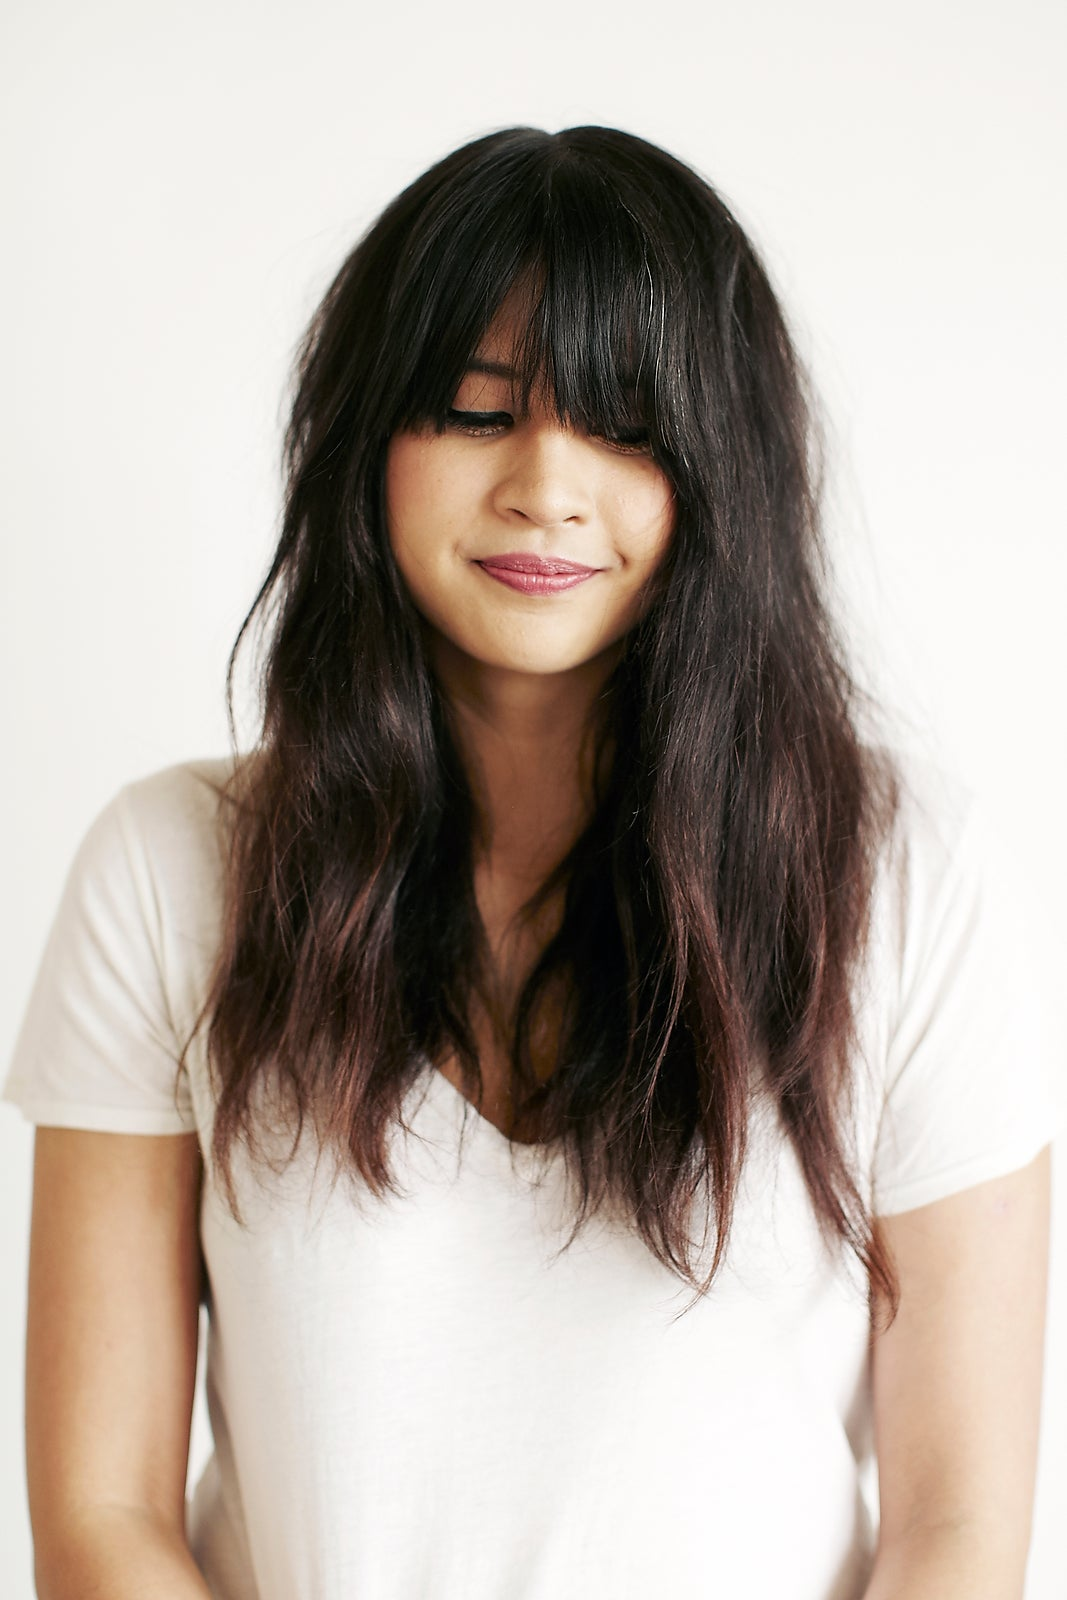 Growing Out Bangs - How To Style Long Fringe